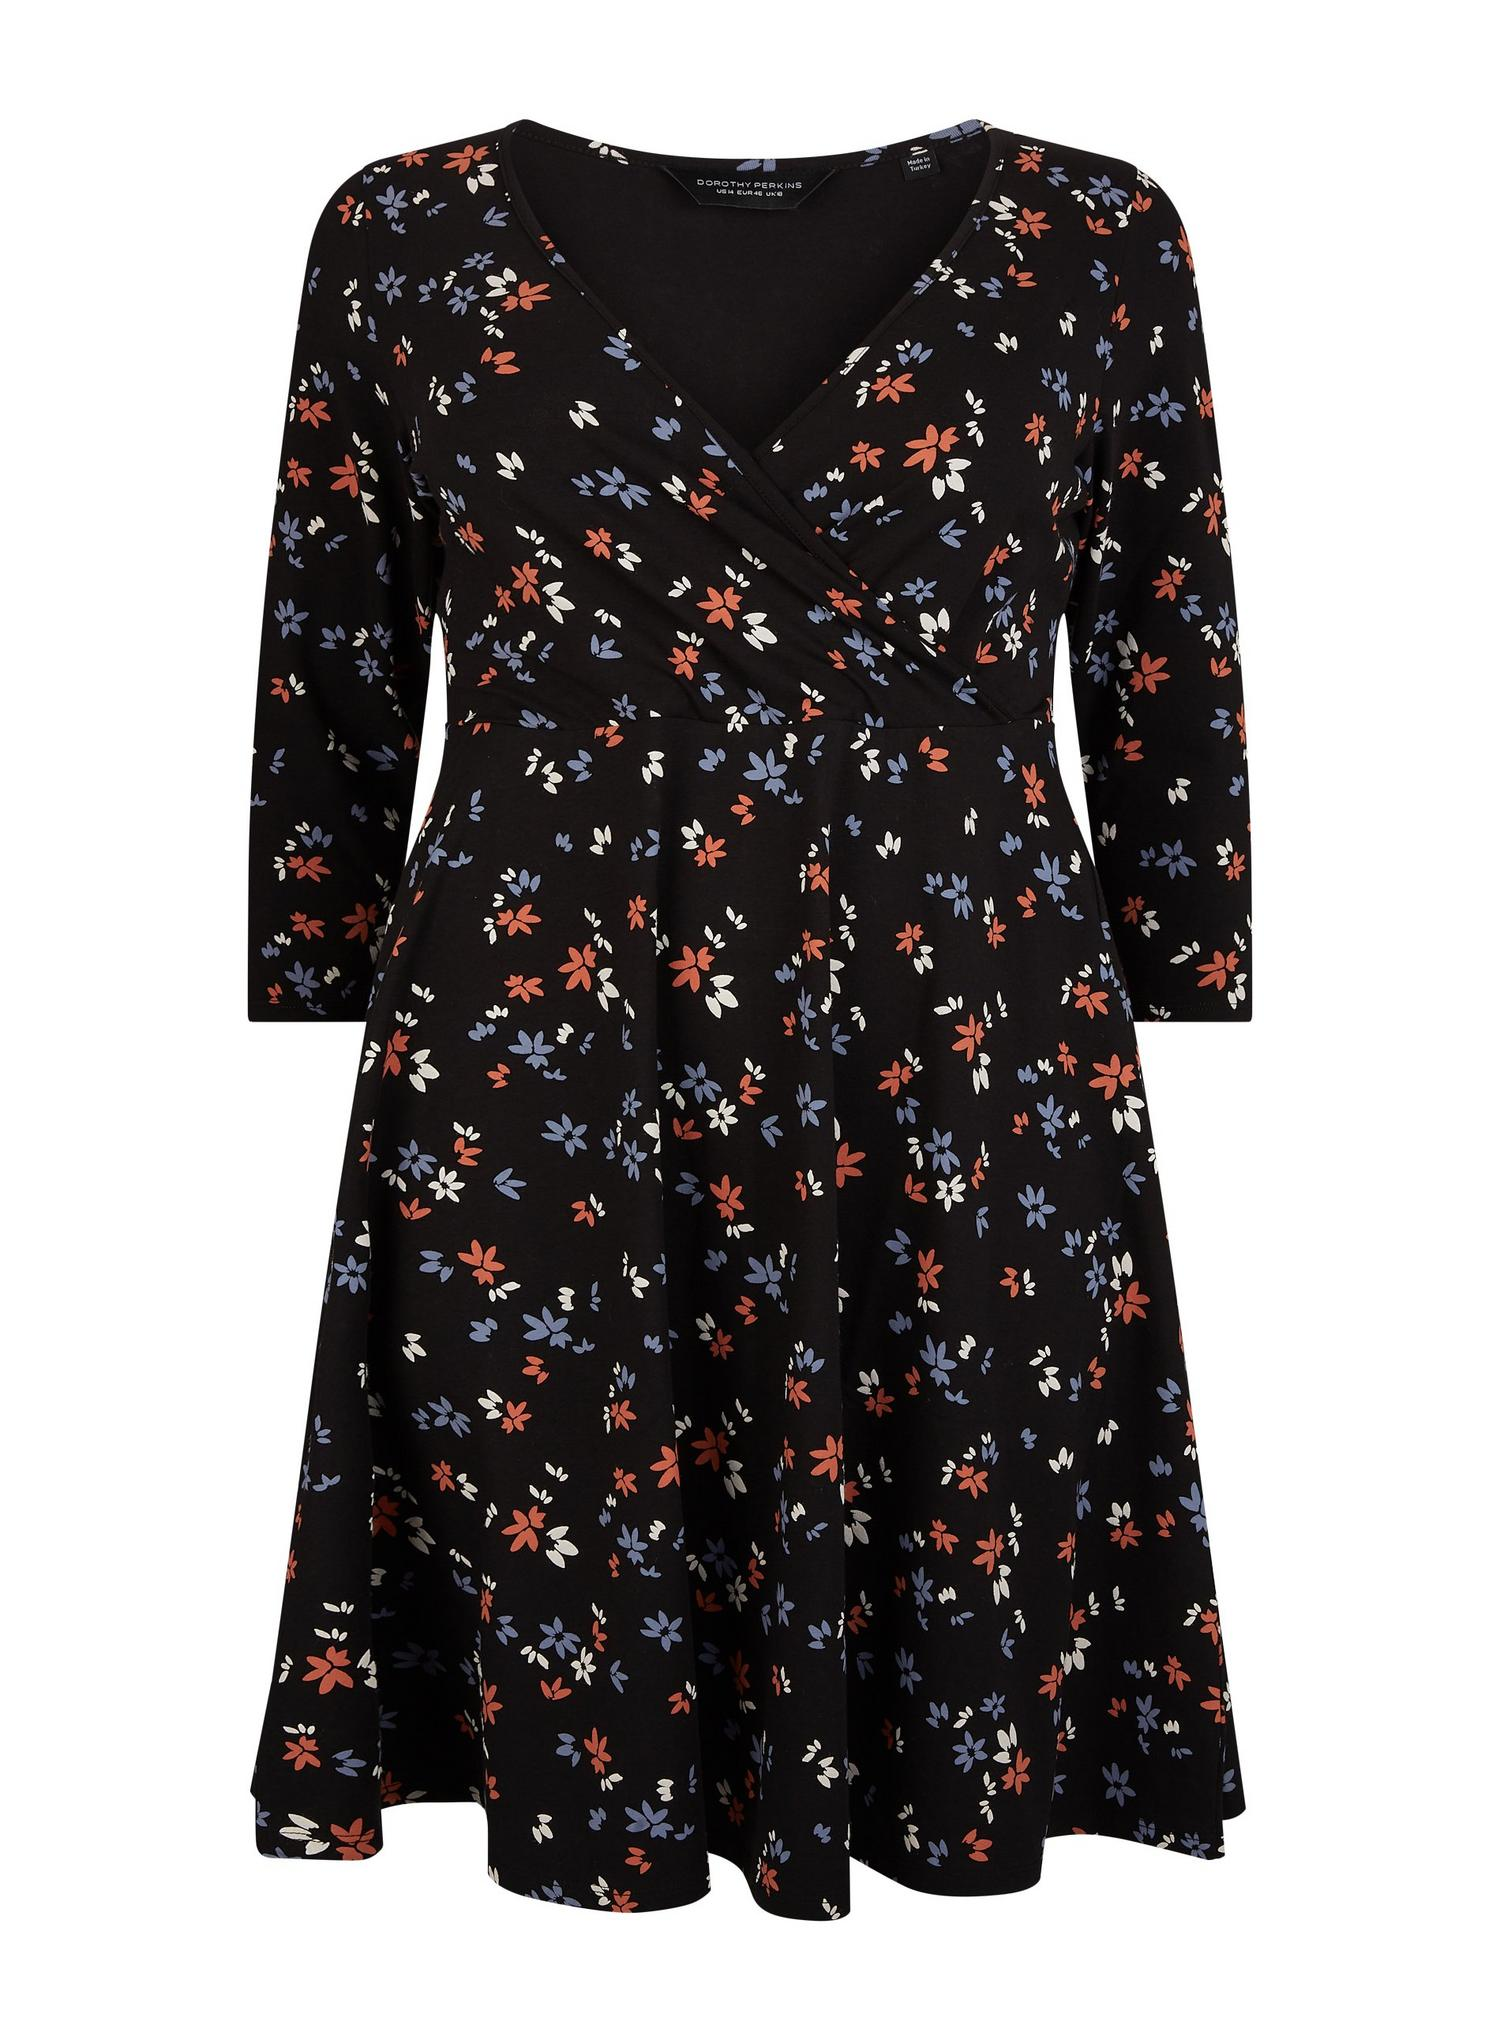 105 Curve Black Ditsy Print Wrap Dress image number 2